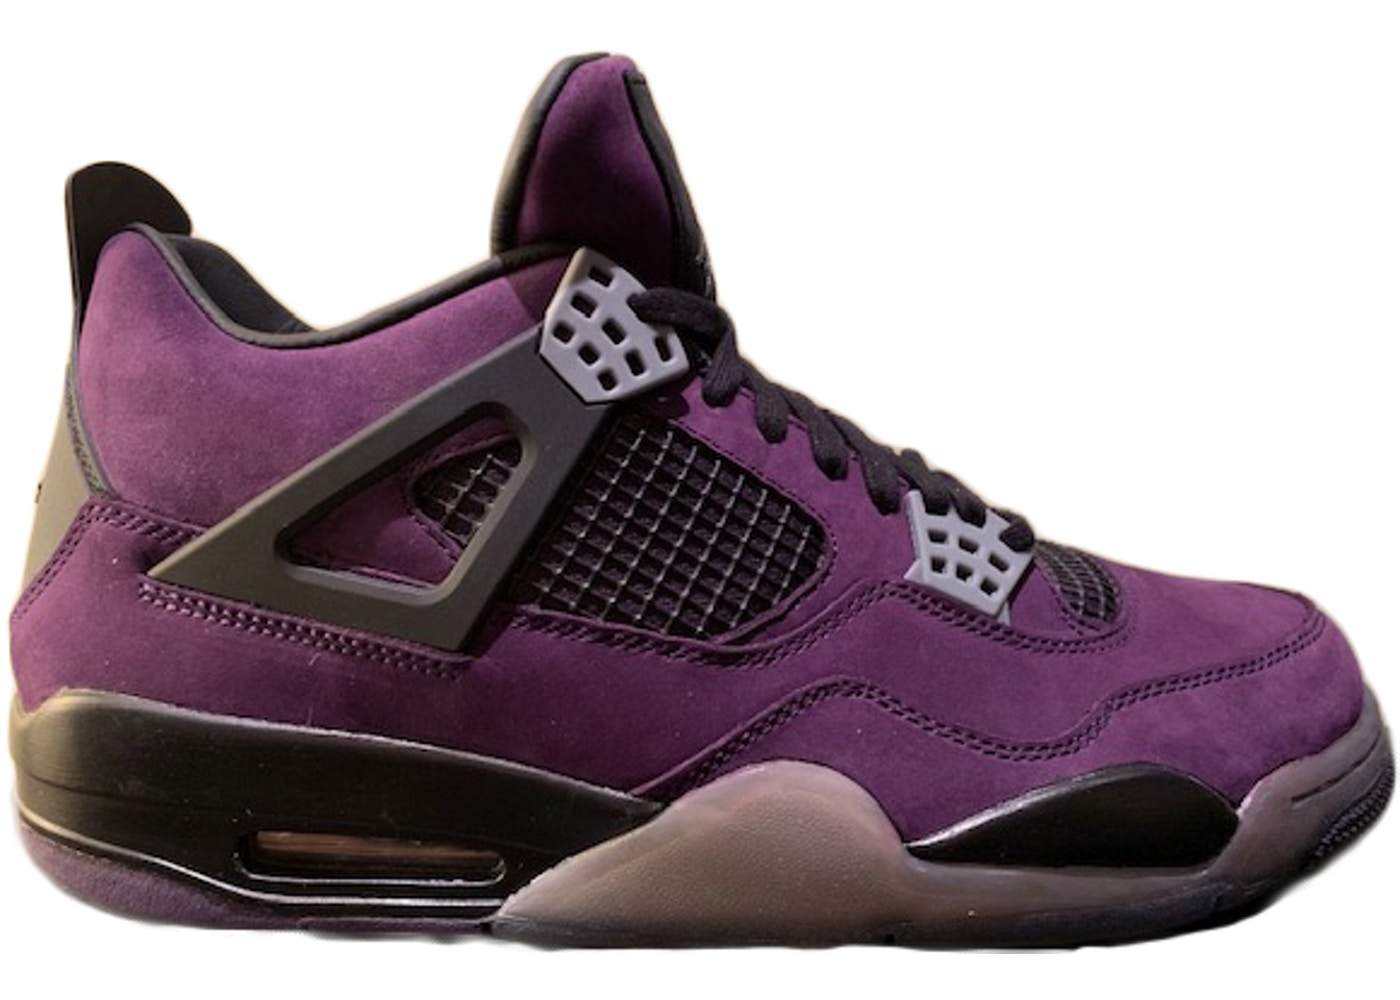 separation shoes 7543f 5d364 Jordan 4 Retro Travis Scott Purple (Friends and Family)